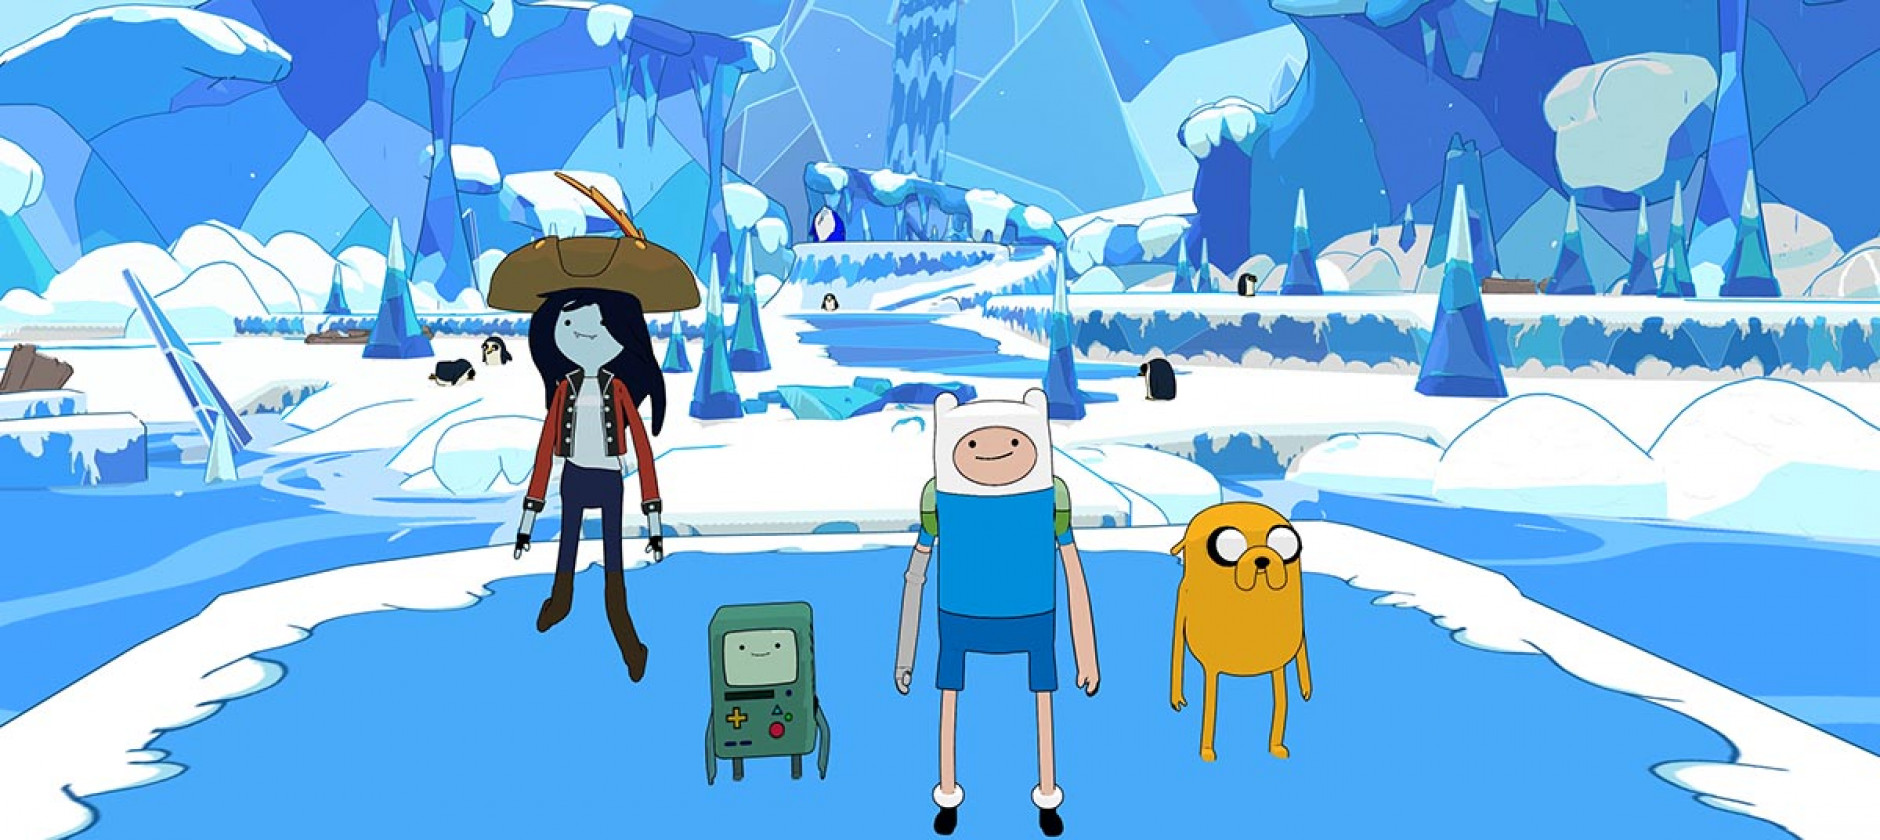 Adventure Time -  I Pirati dell'Enchiridion, bisogna salvare la Terra di Ooo